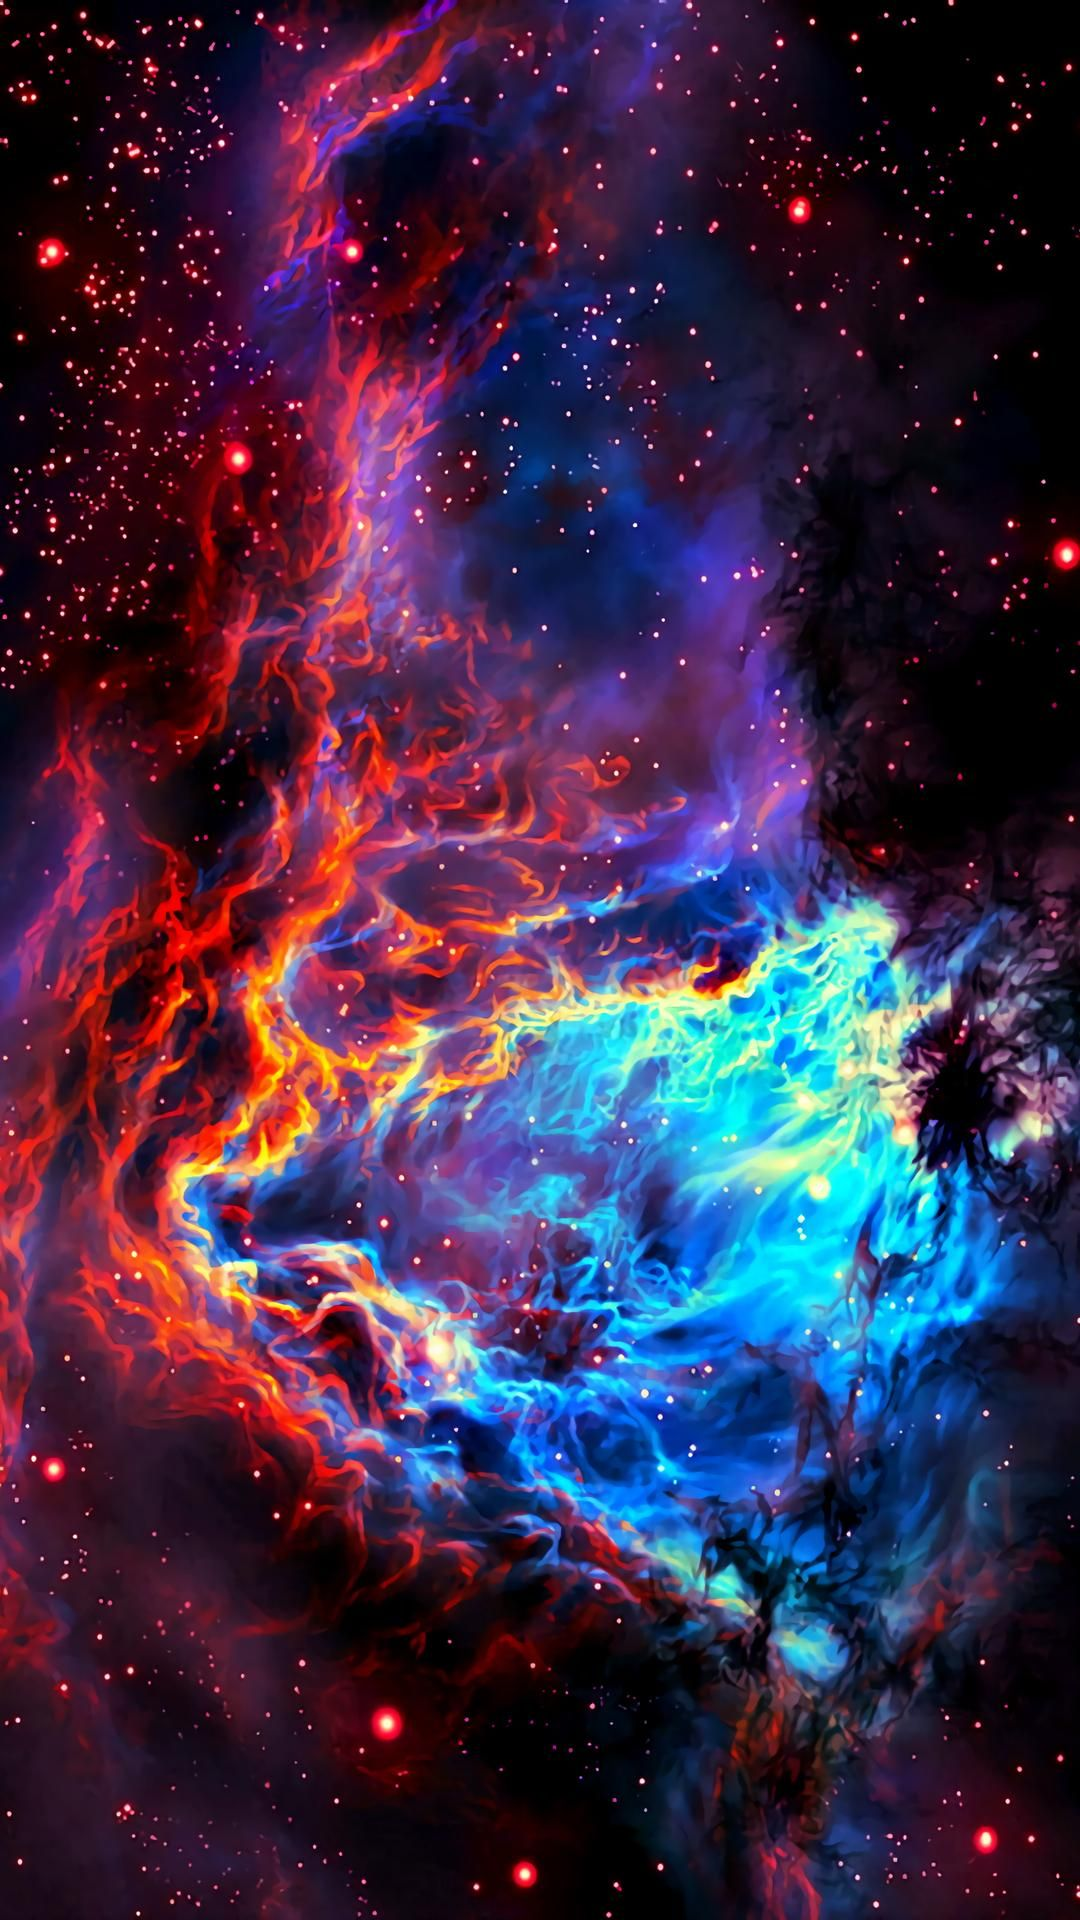 Cosmic birth wallpaper in 2019 spitzer space telescope - Spitzer space telescope wallpaper ...